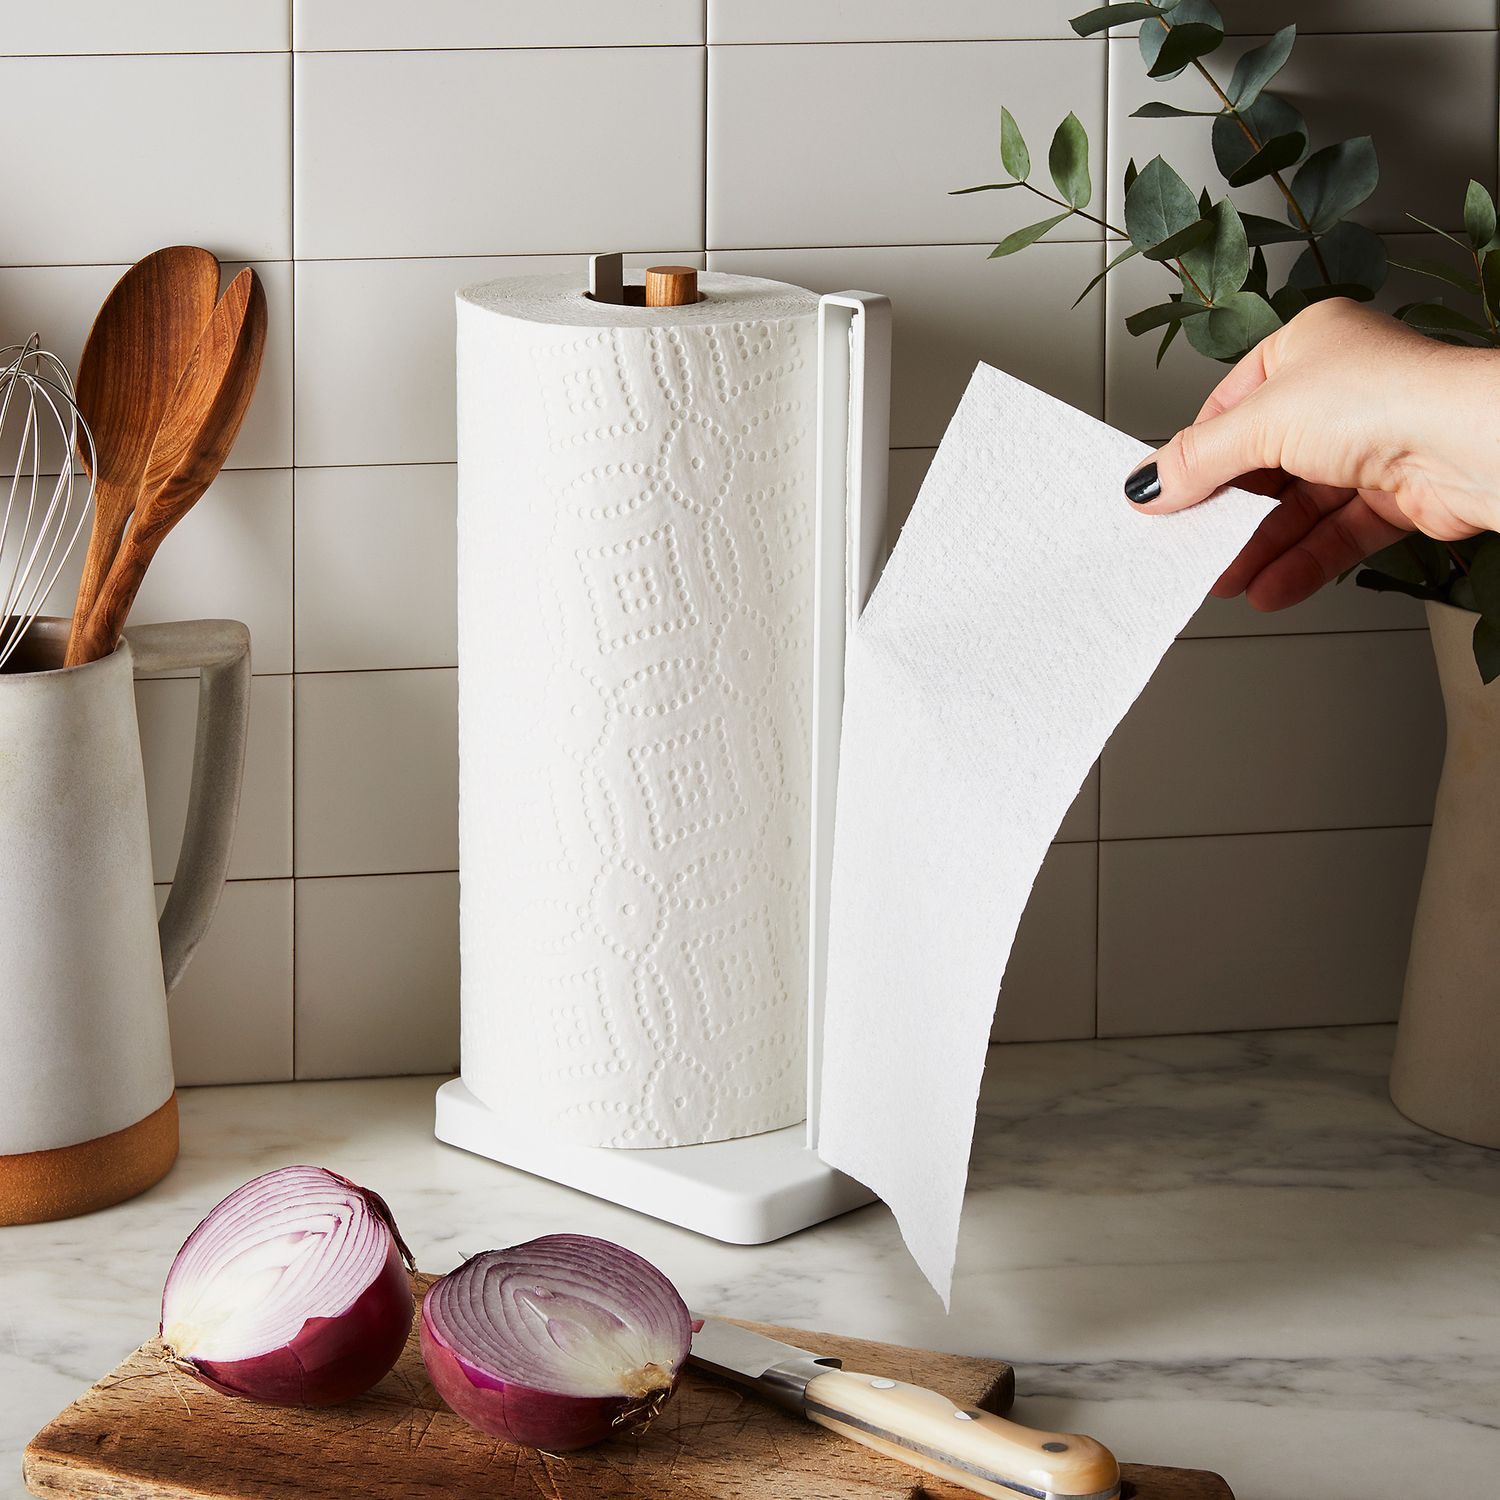 One Handed Paper Towel Holder By Yamazaki Home White On Food52